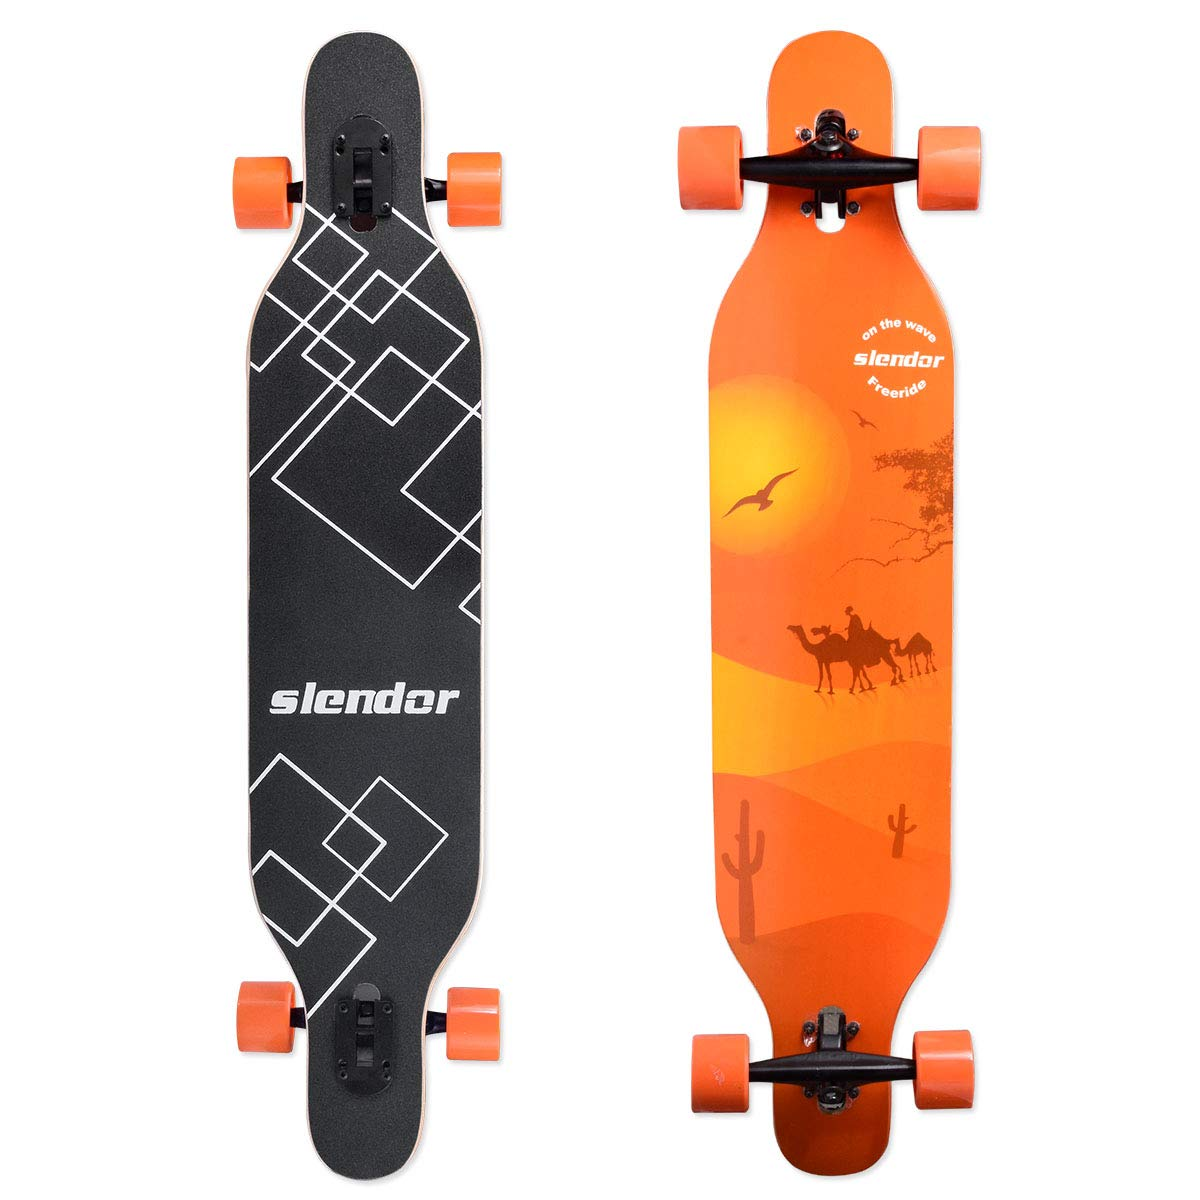 slendor Longboard Skateboard 42 inch Drop Through Deck Complete Maple Cruiser Freestyle, Camber Concave by slendor